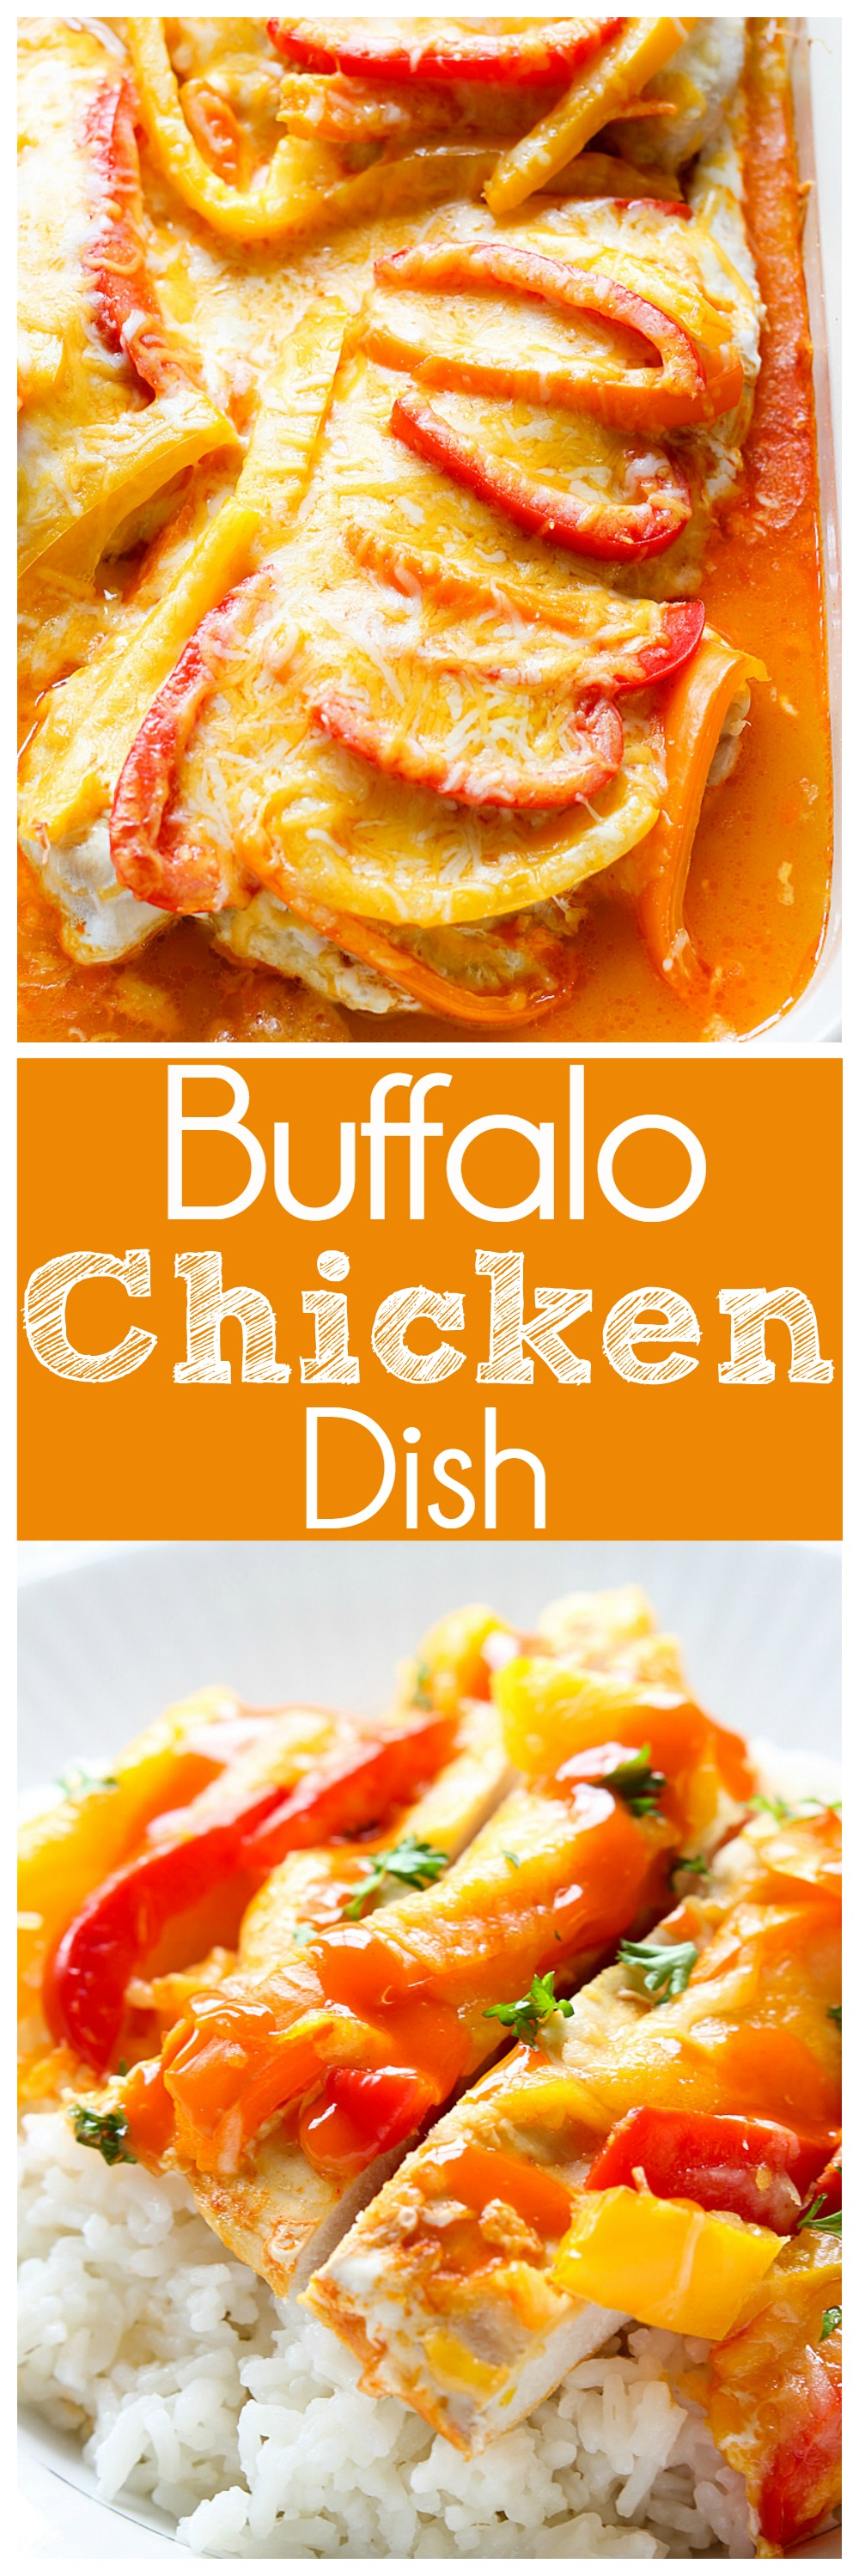 Buffalo Chicken Dish